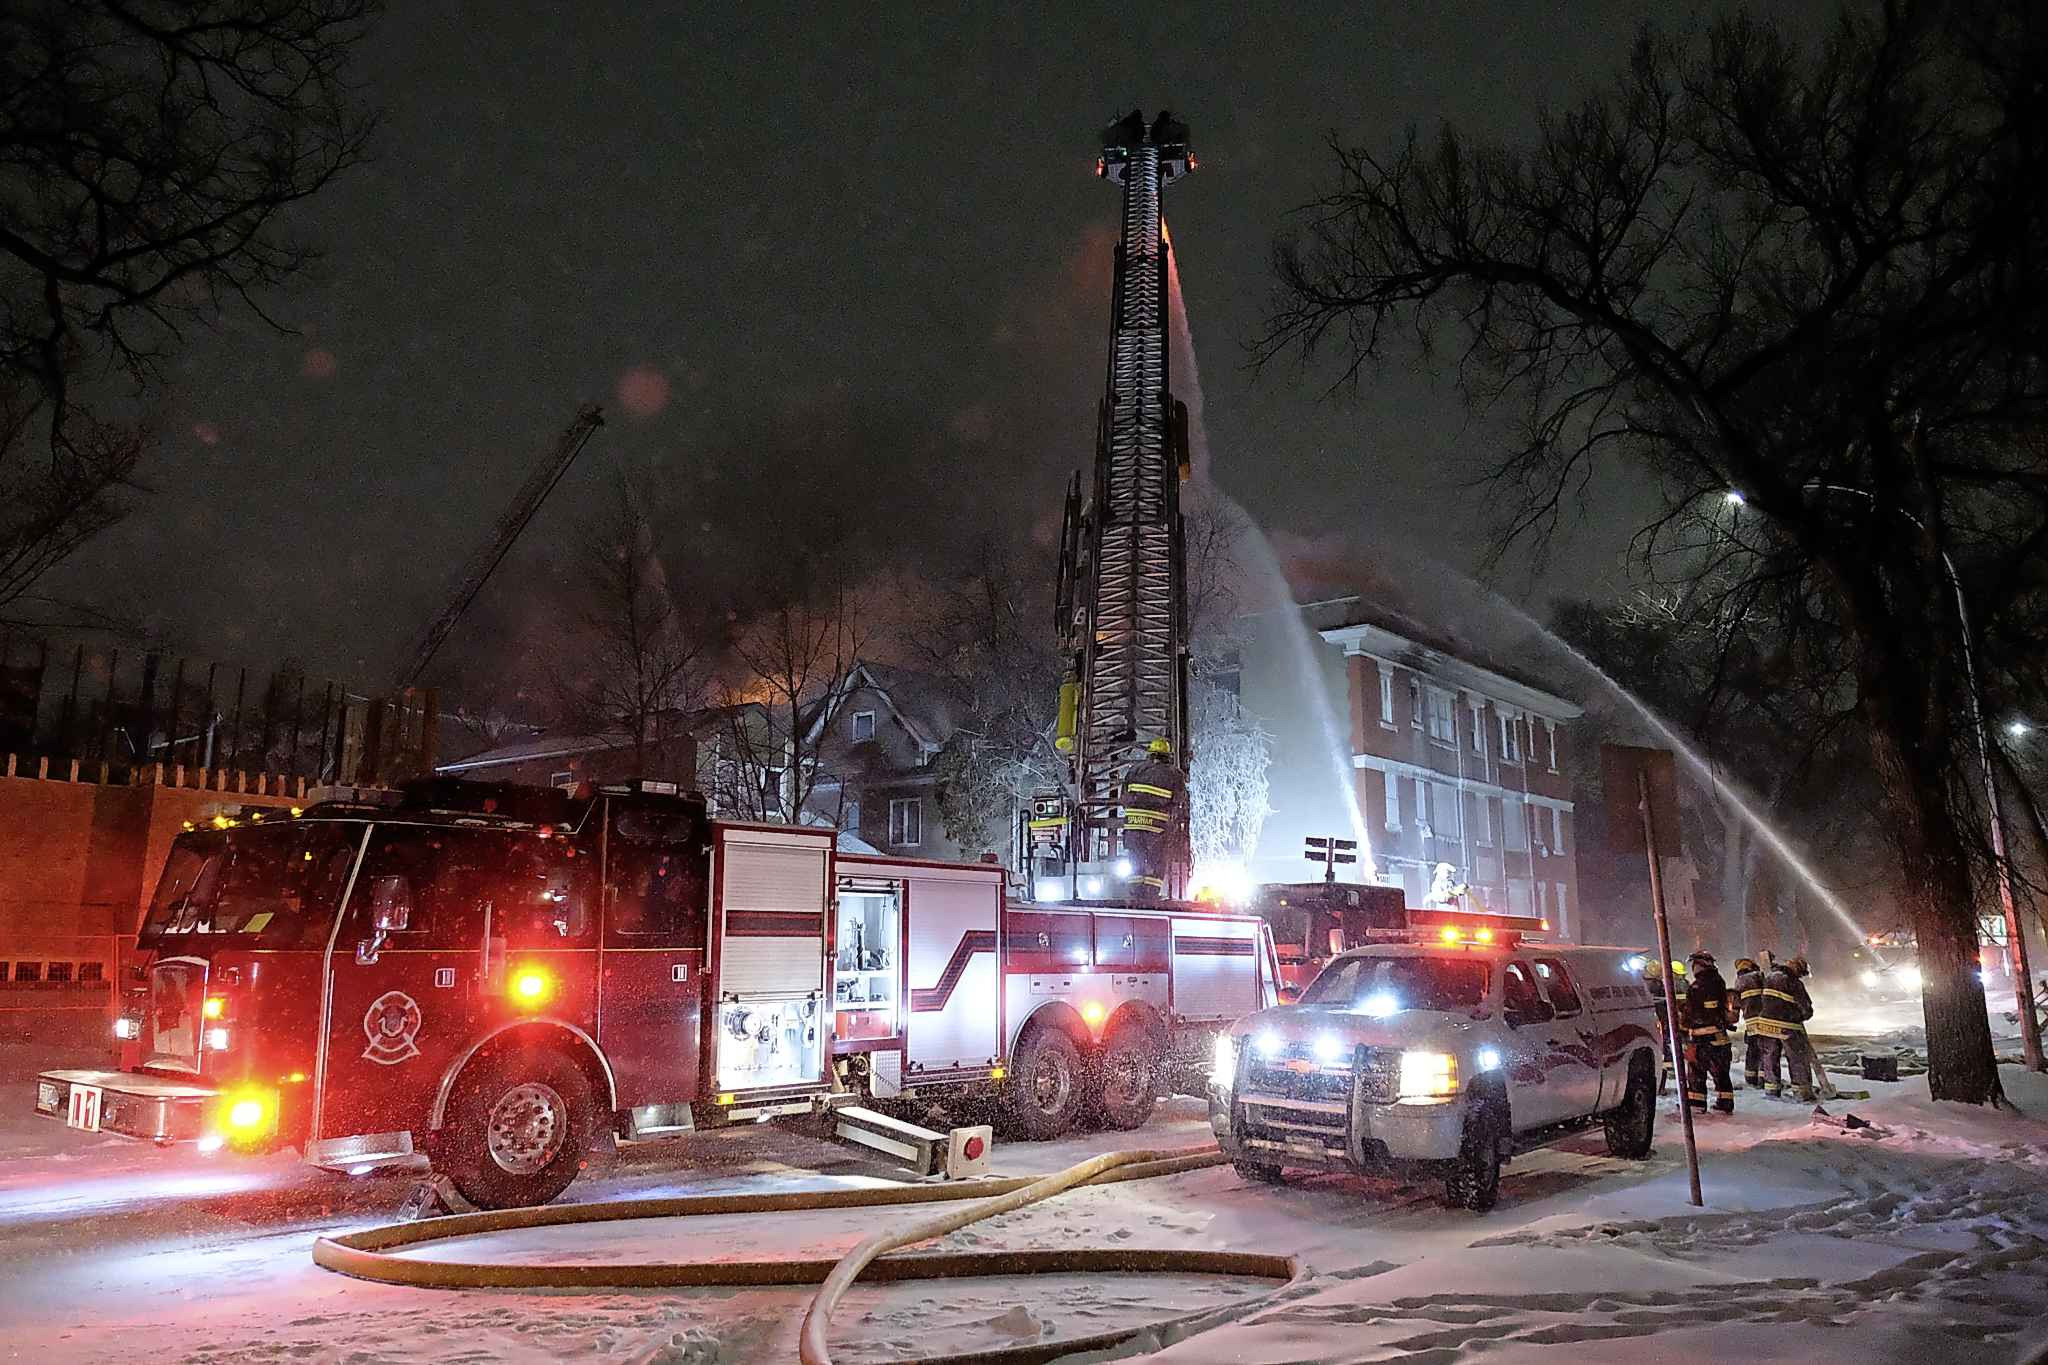 Firefighters battle the blaze at 426 Maryland St. on Wednesday evening.